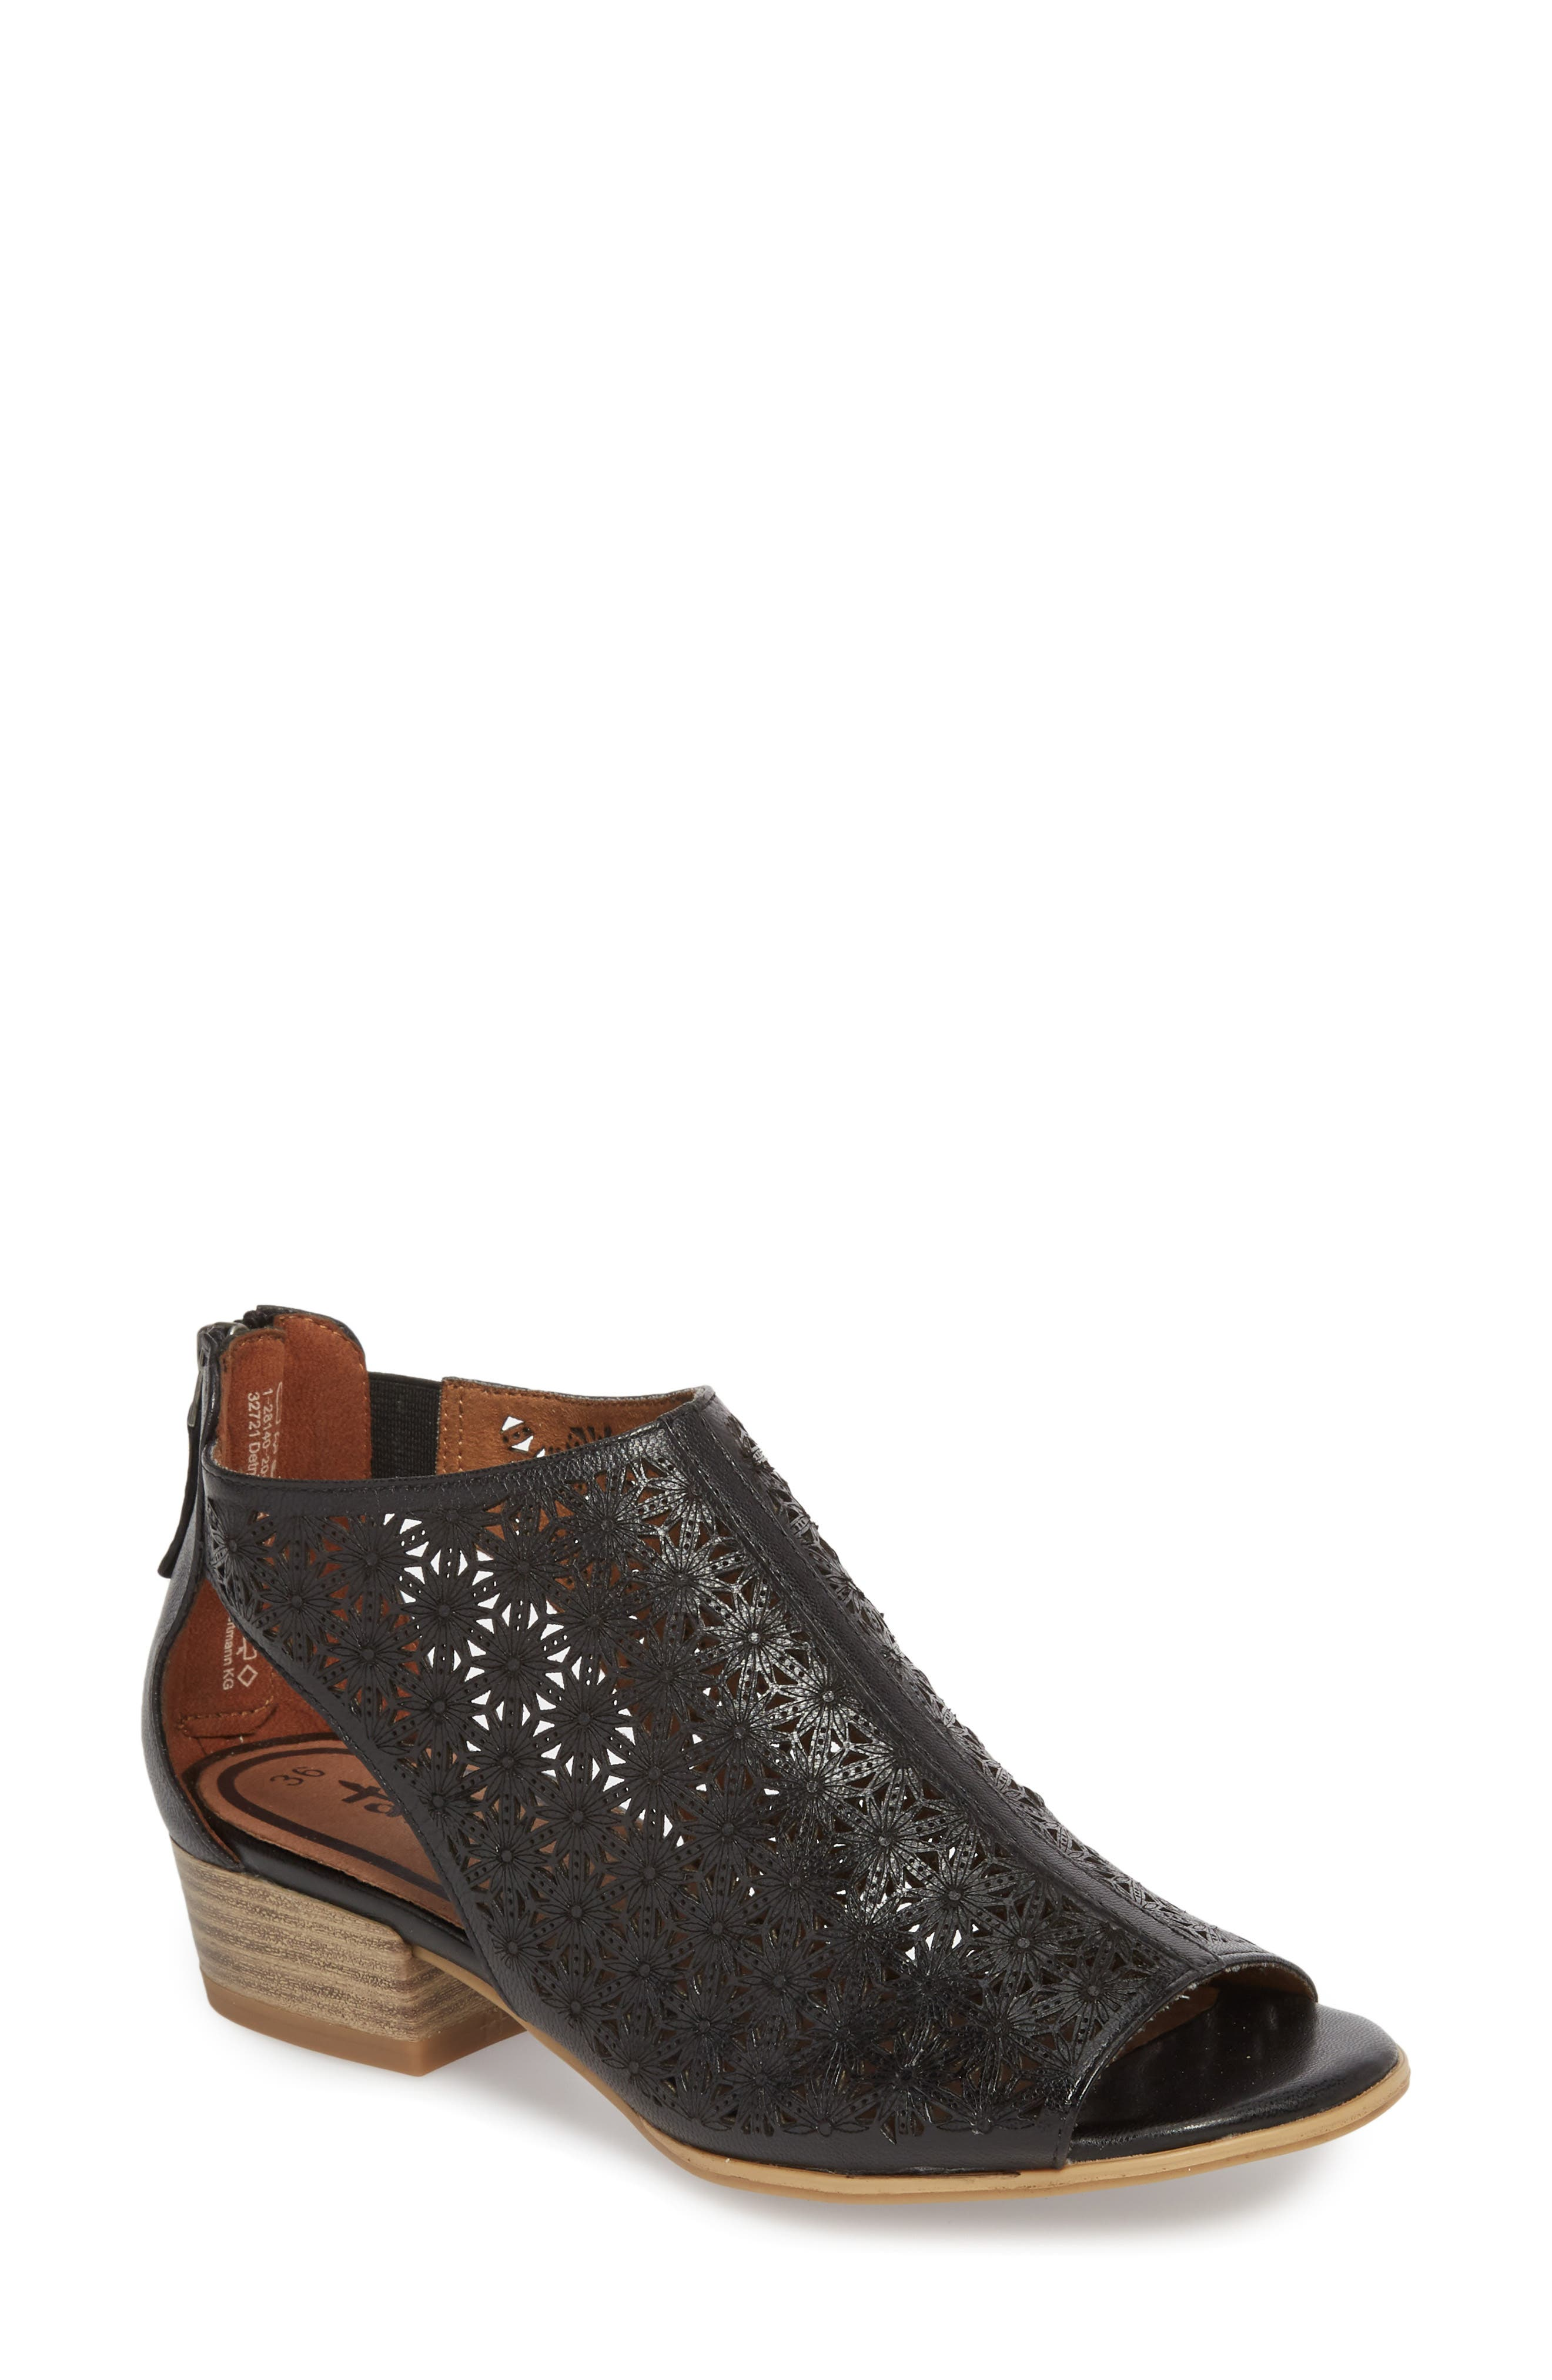 Nao Bootie,                         Main,                         color, 001